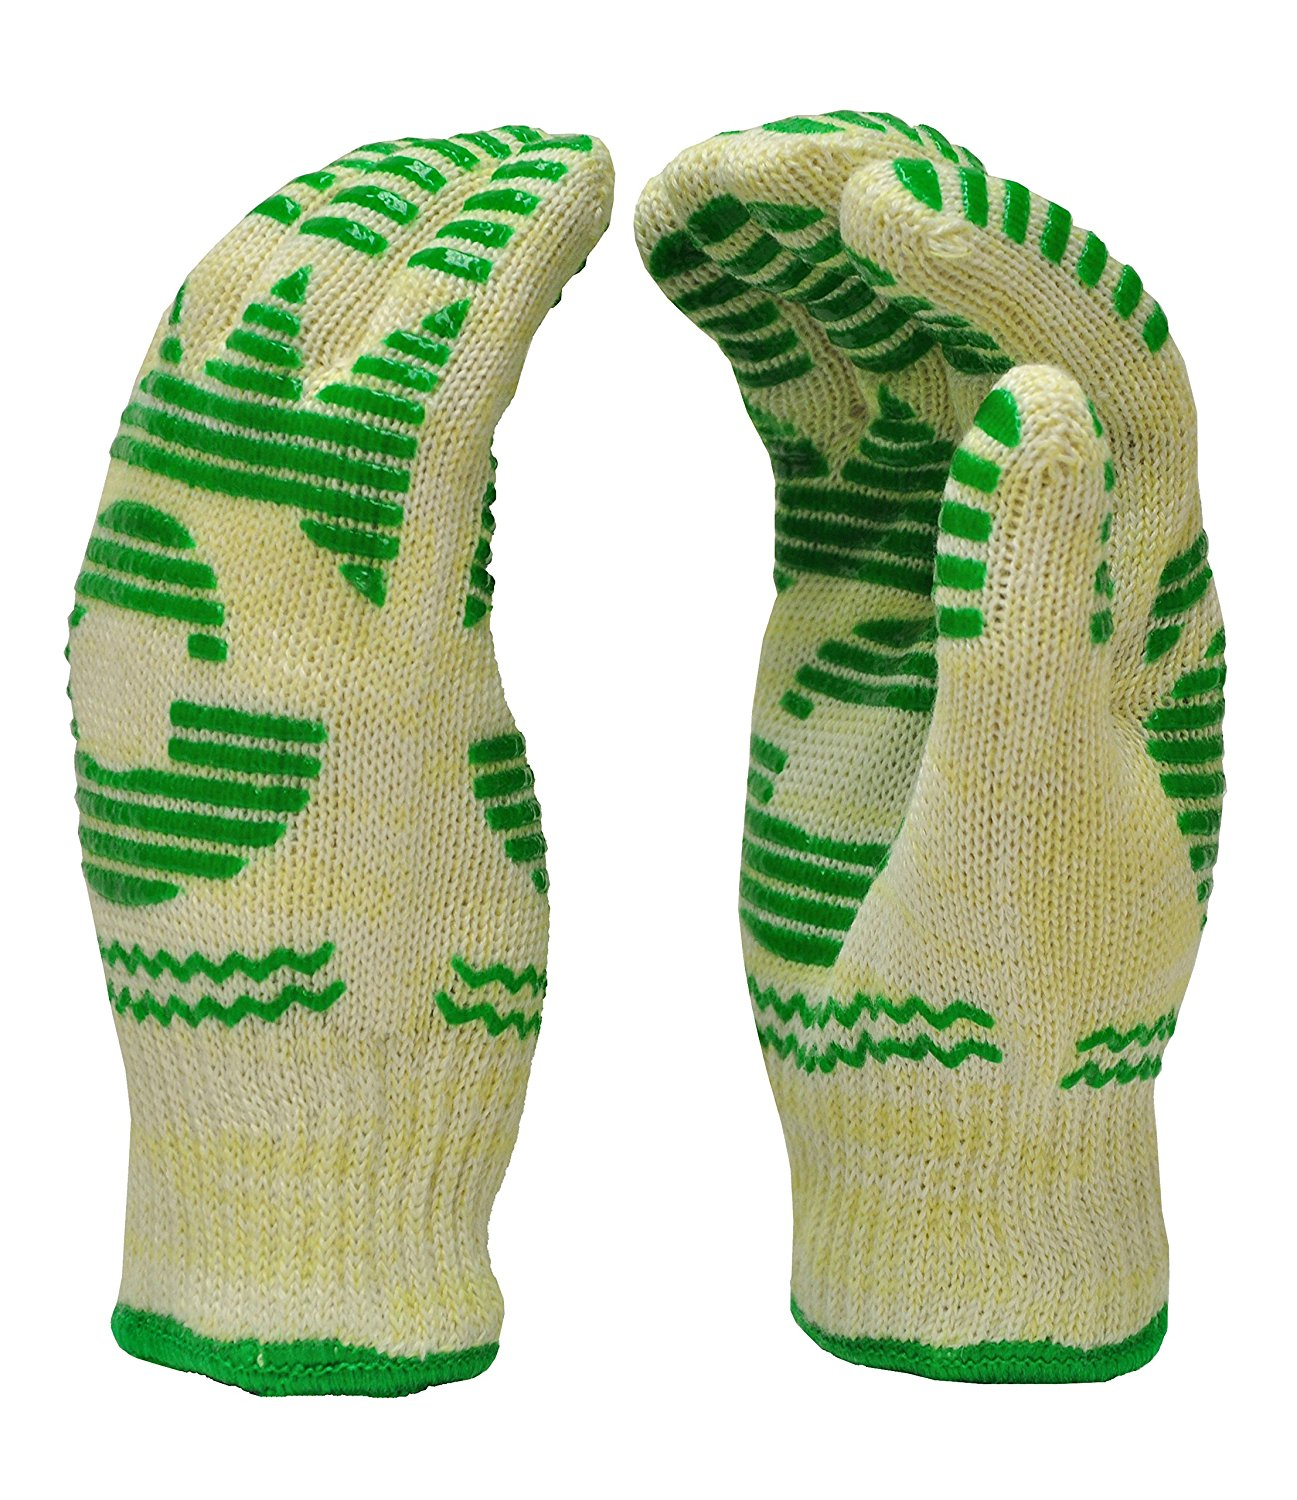 GF Gloves 1684L-12 Heat Resistant Oven Gloves, Withstands Extreme Heat, Flexible 5 Finger Oven Mitt, Large (Pack of 12)